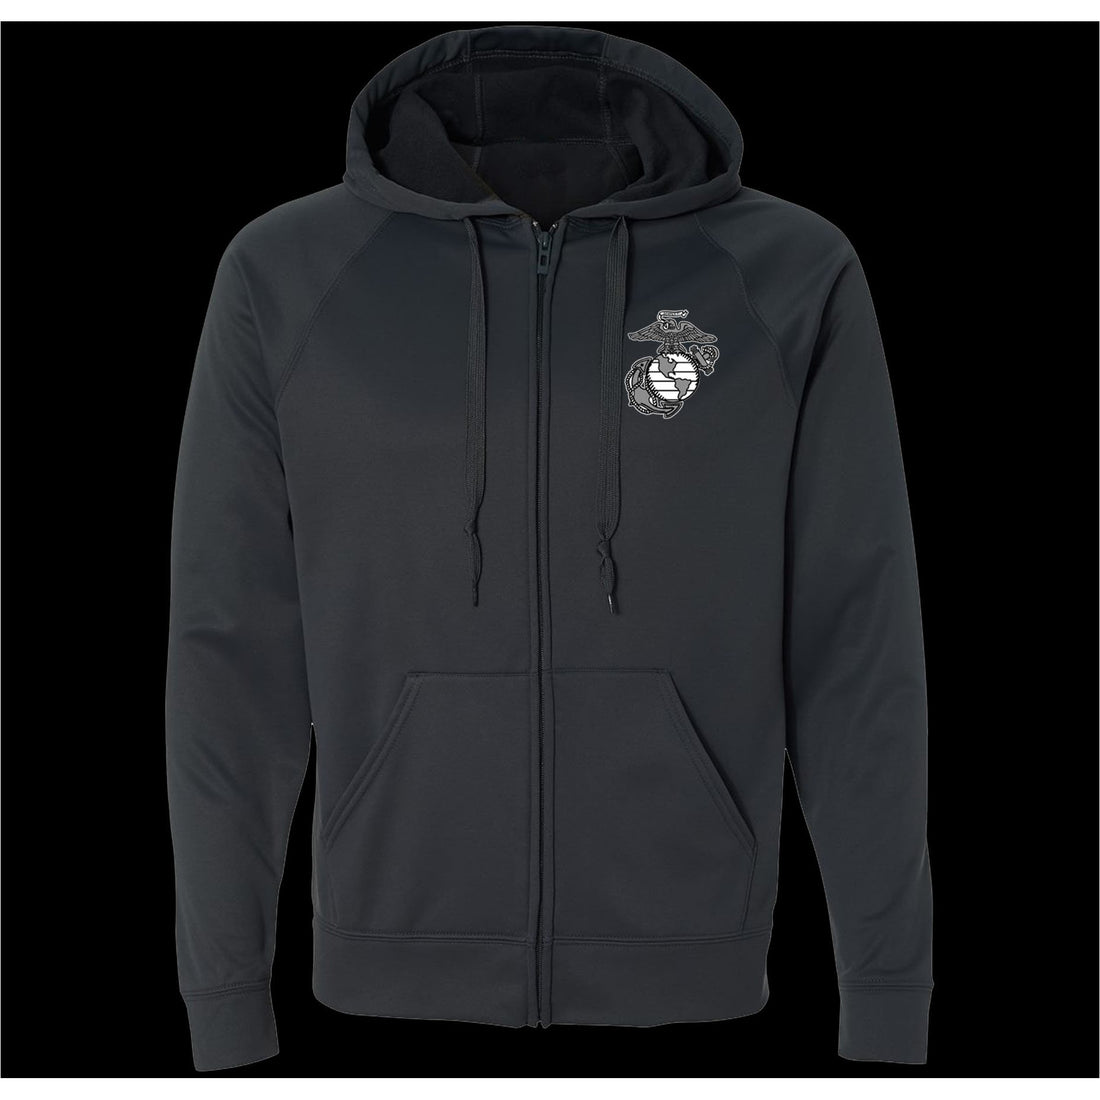 COMBAT CHARGED DRI-FIT PERFORMANCE POLY GREY EGA FULL-ZIP HOODIE